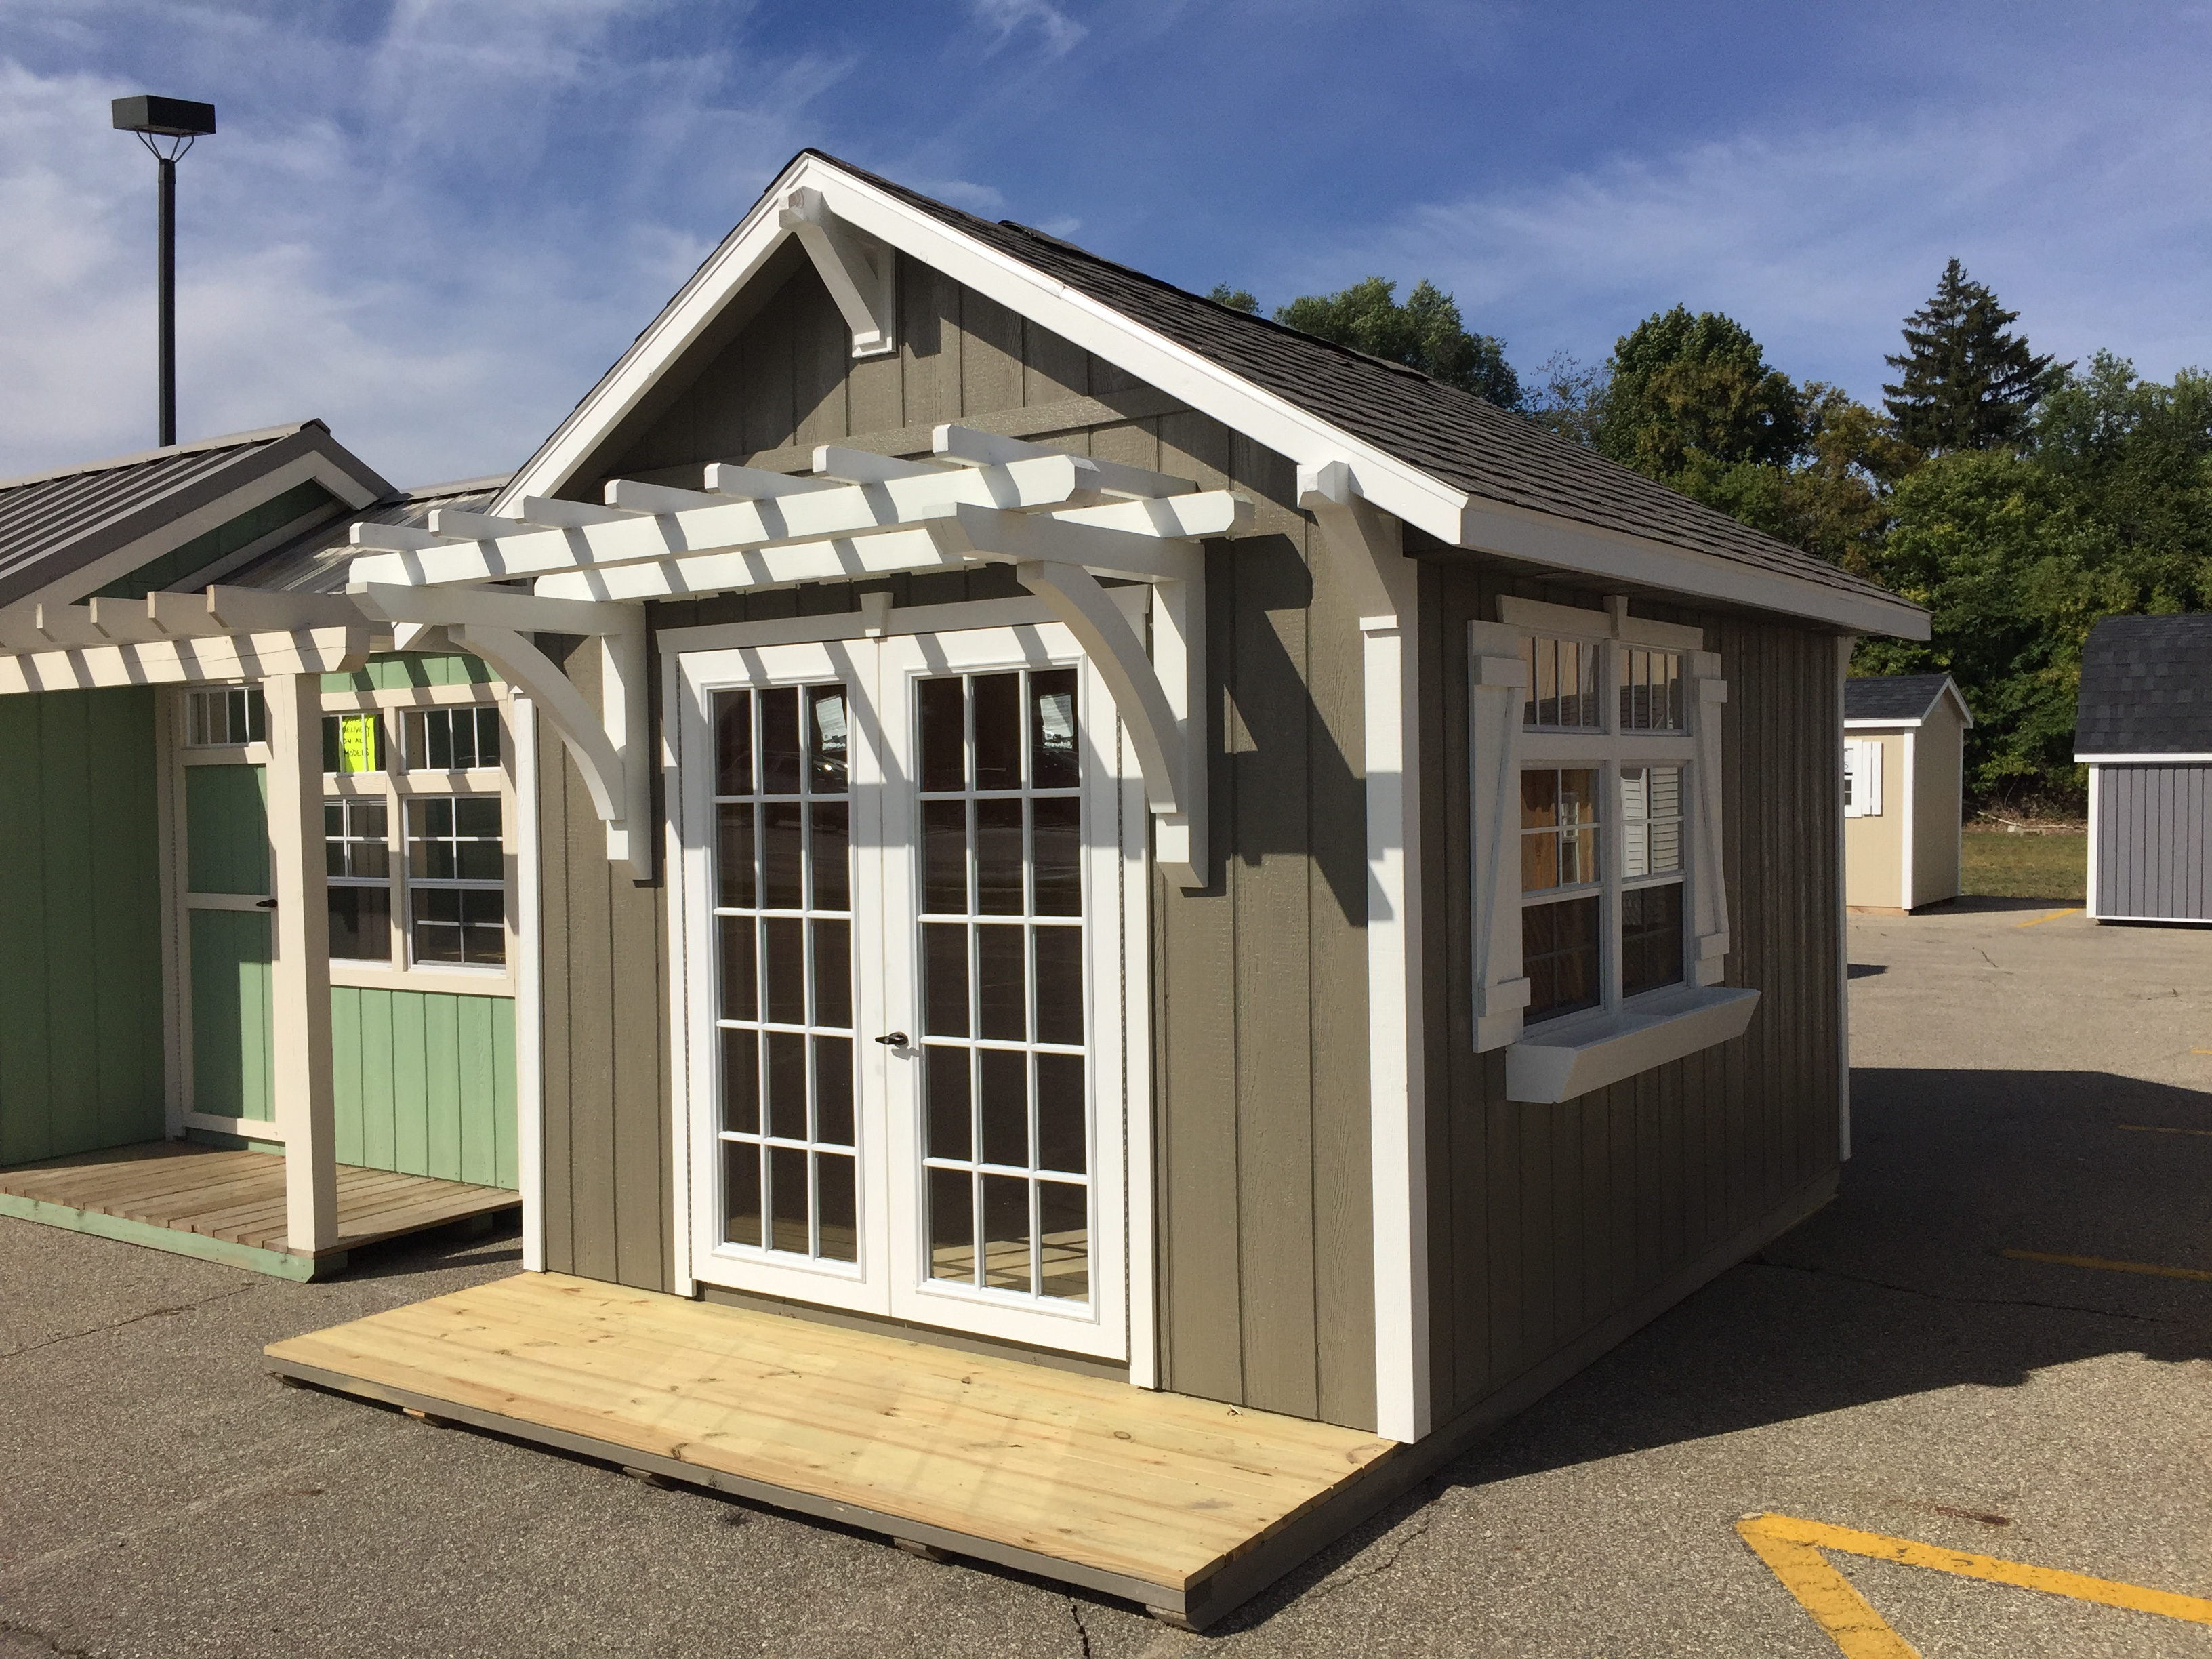 our michigan craftsmanship is a cut above the rest garden sheds michigan - Garden Sheds Michigan